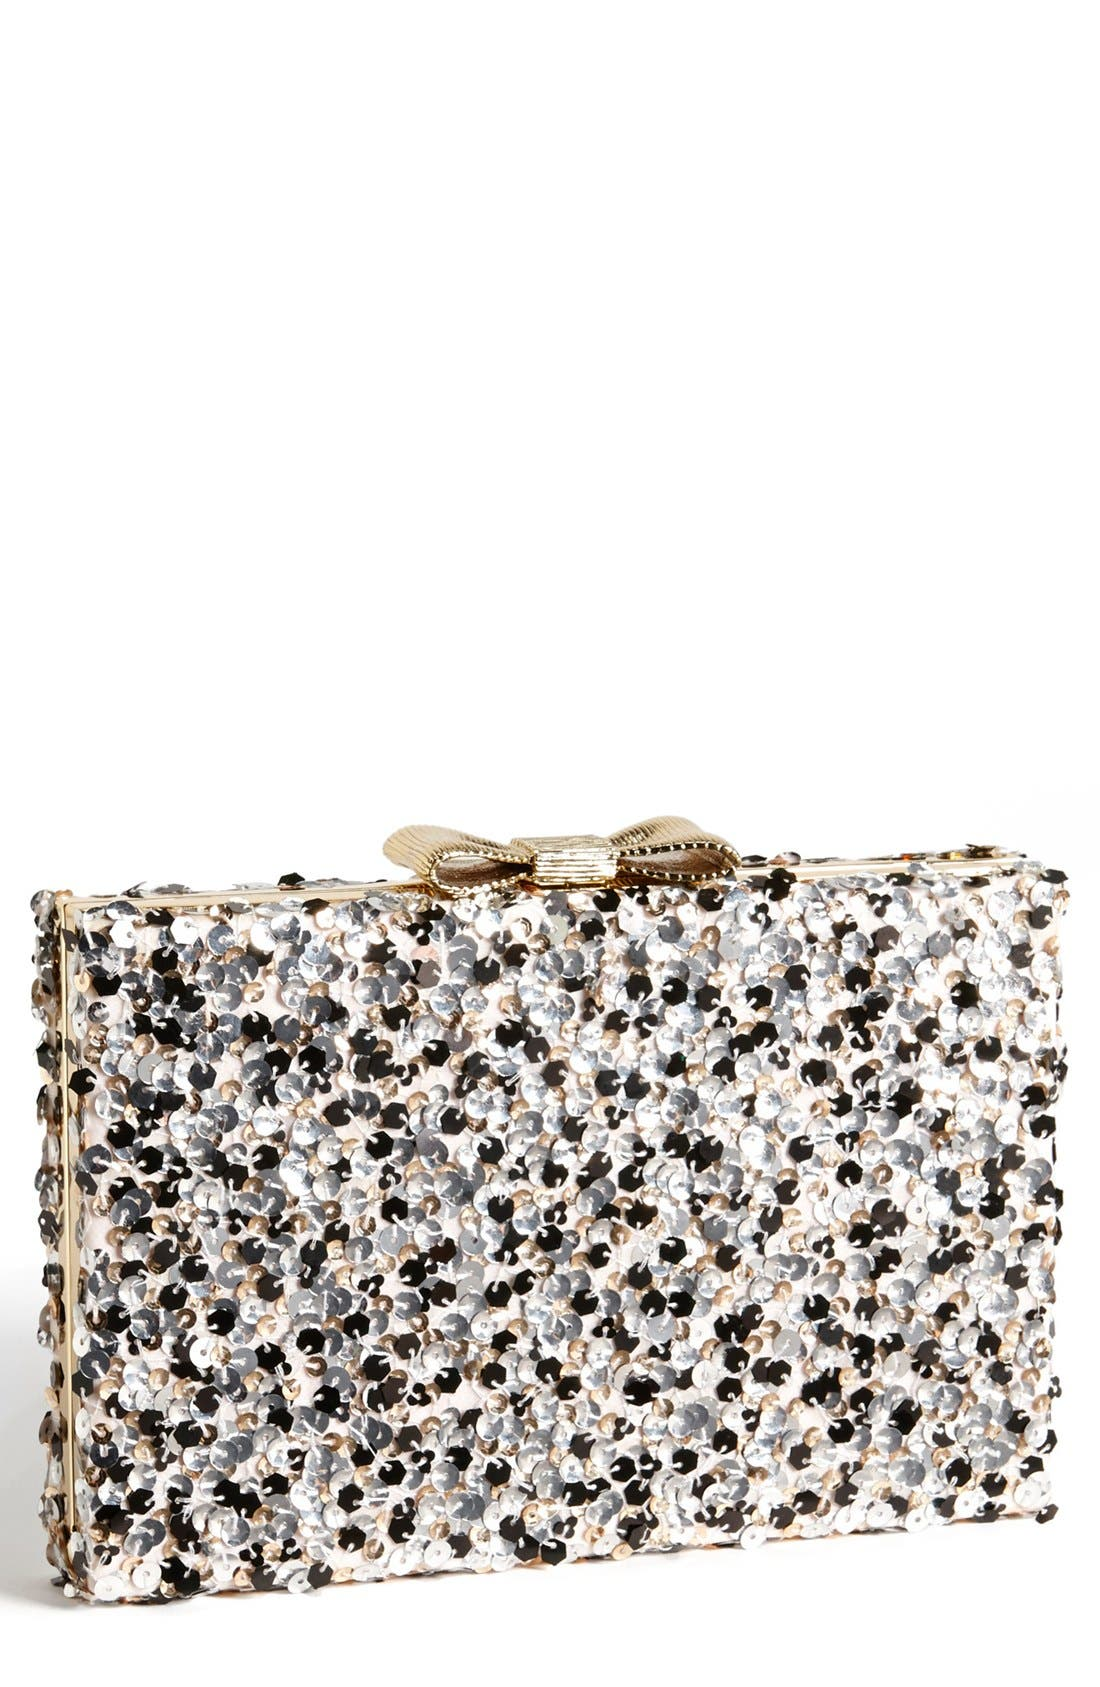 Main Image - kate spade new york 'emanuelle' clutch